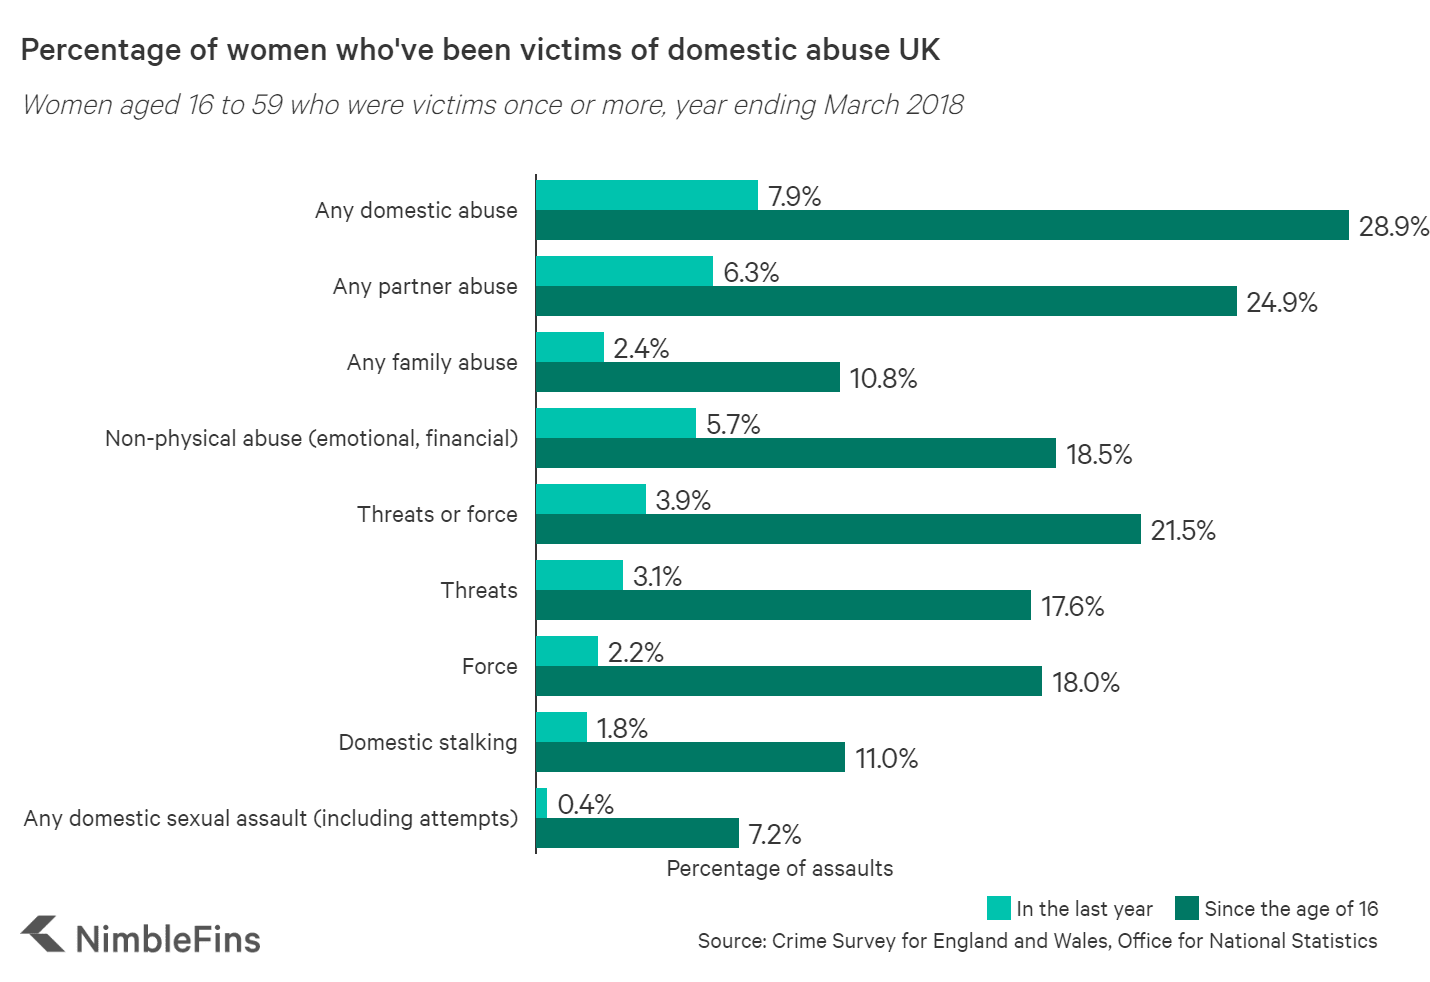 Percentage of women who've been victims of domestic abuse UK